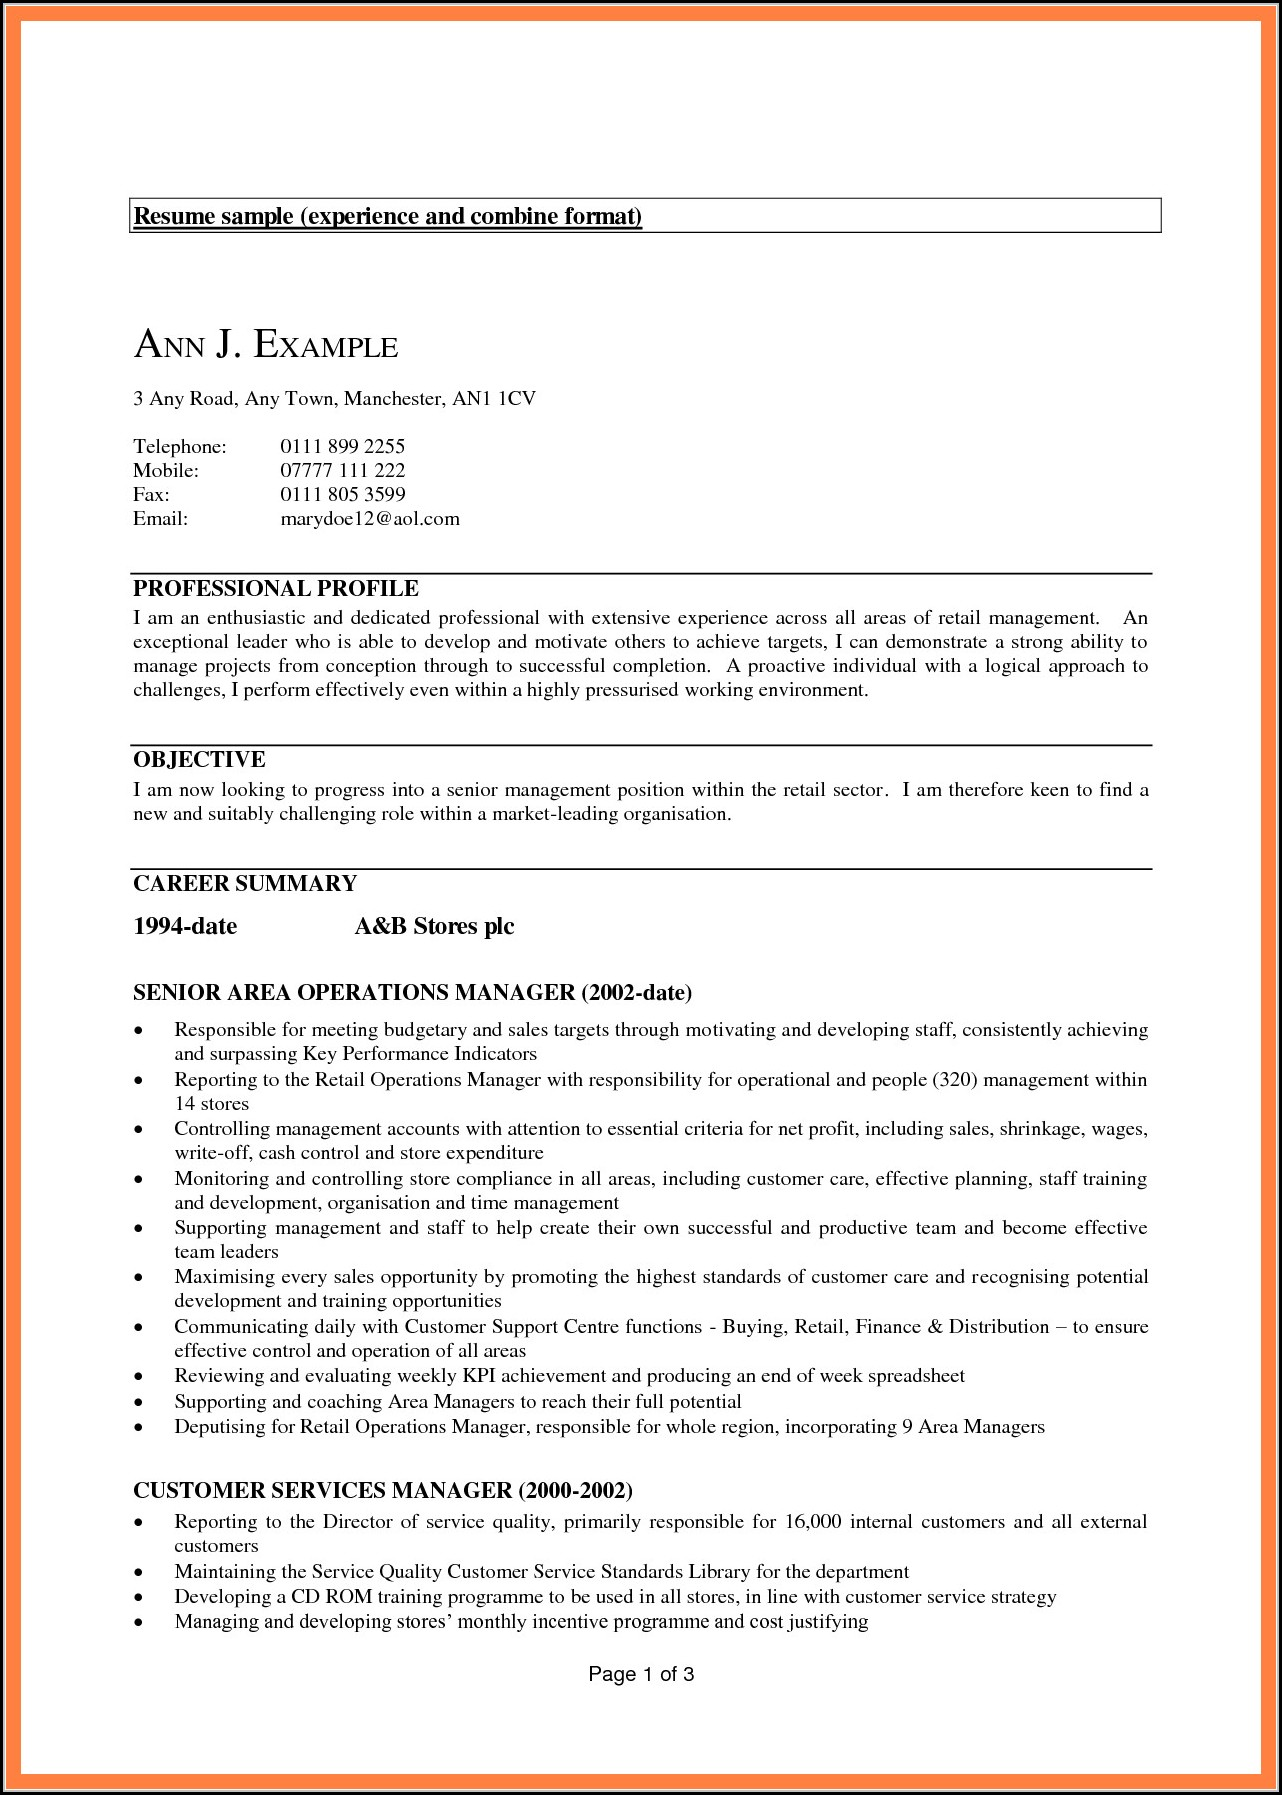 zipjob free resume review